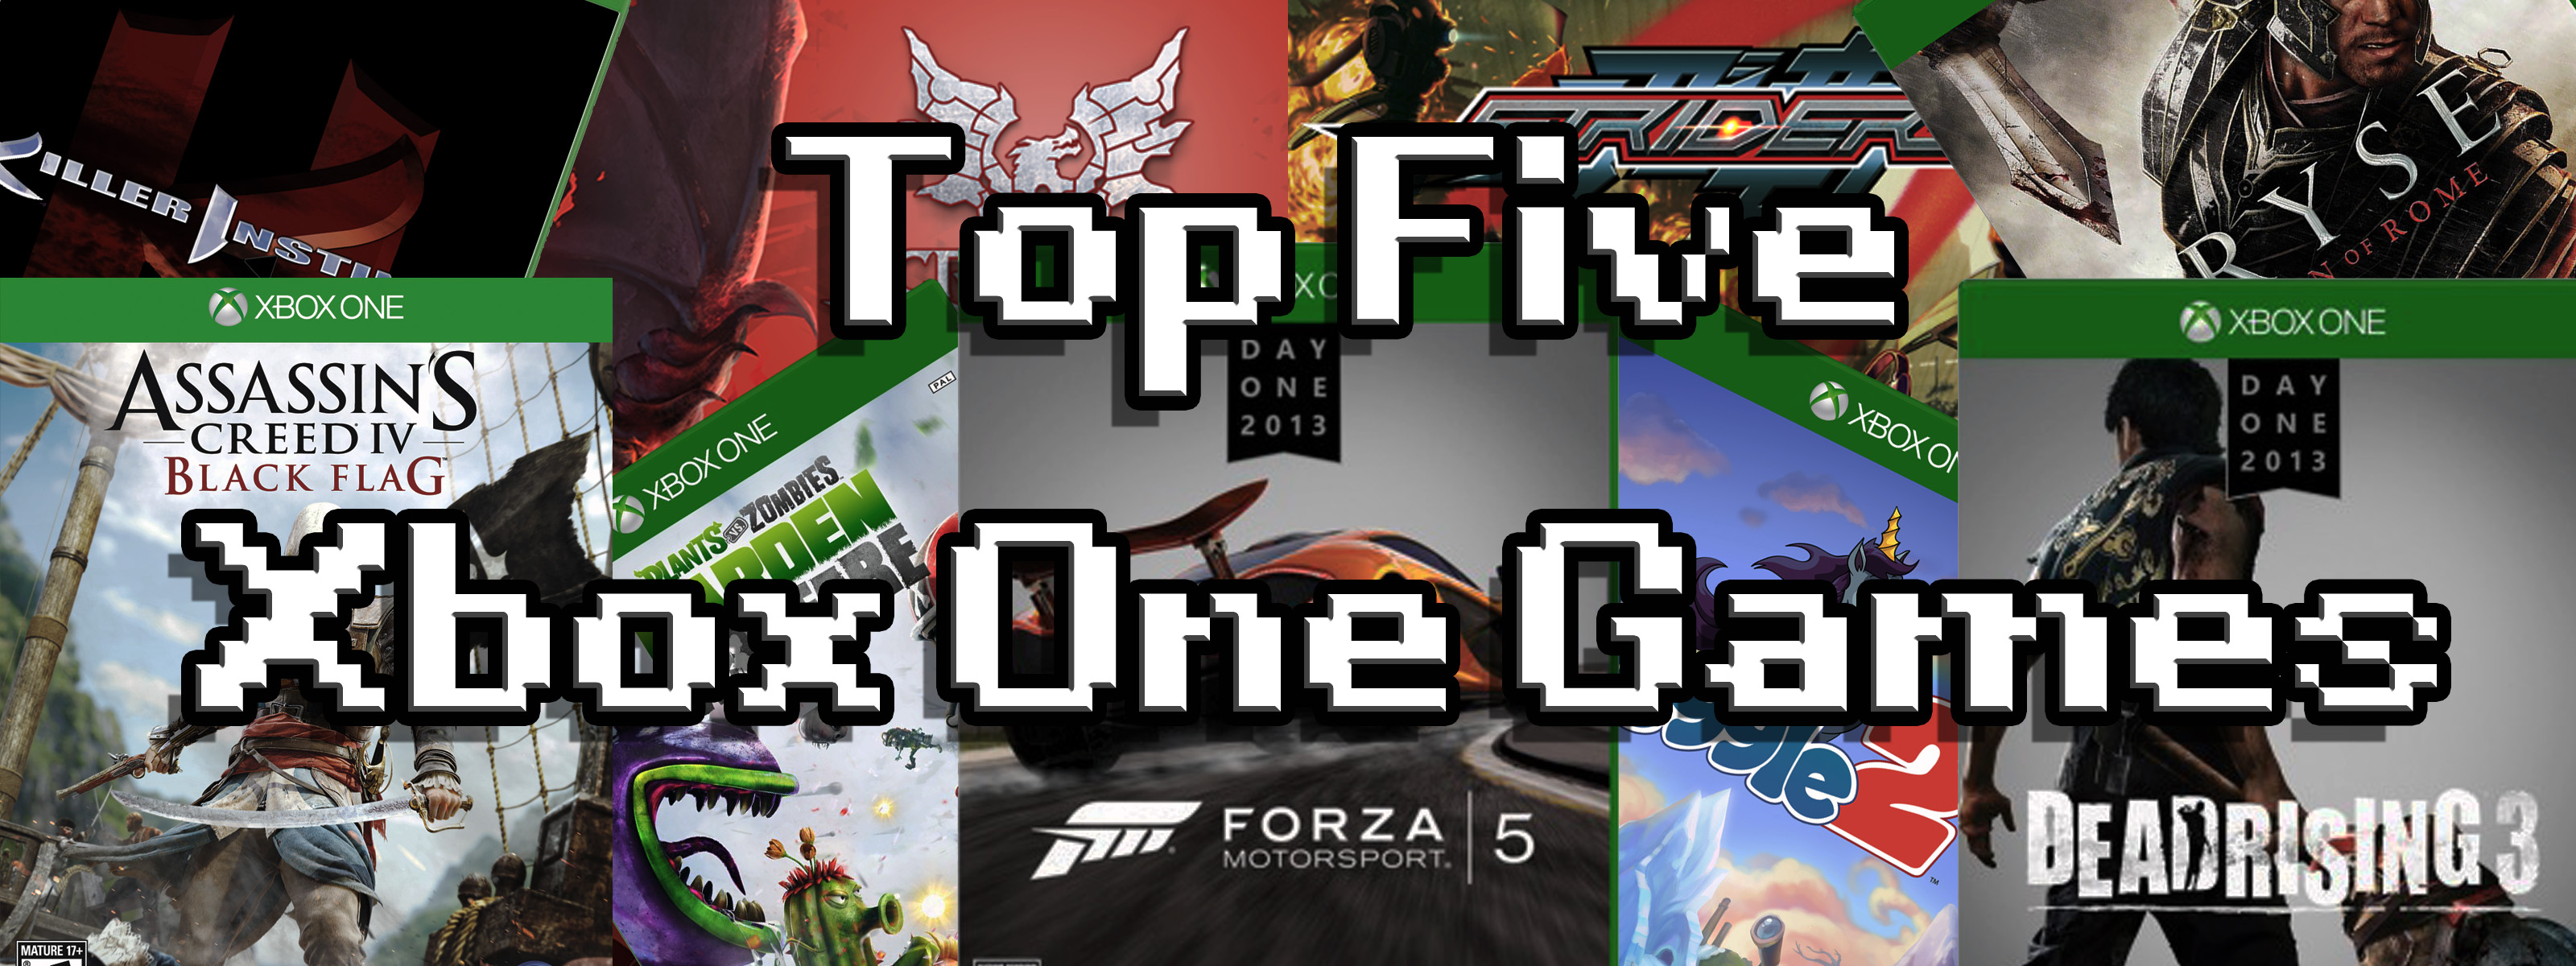 top-5-xbox-one-games.jpg